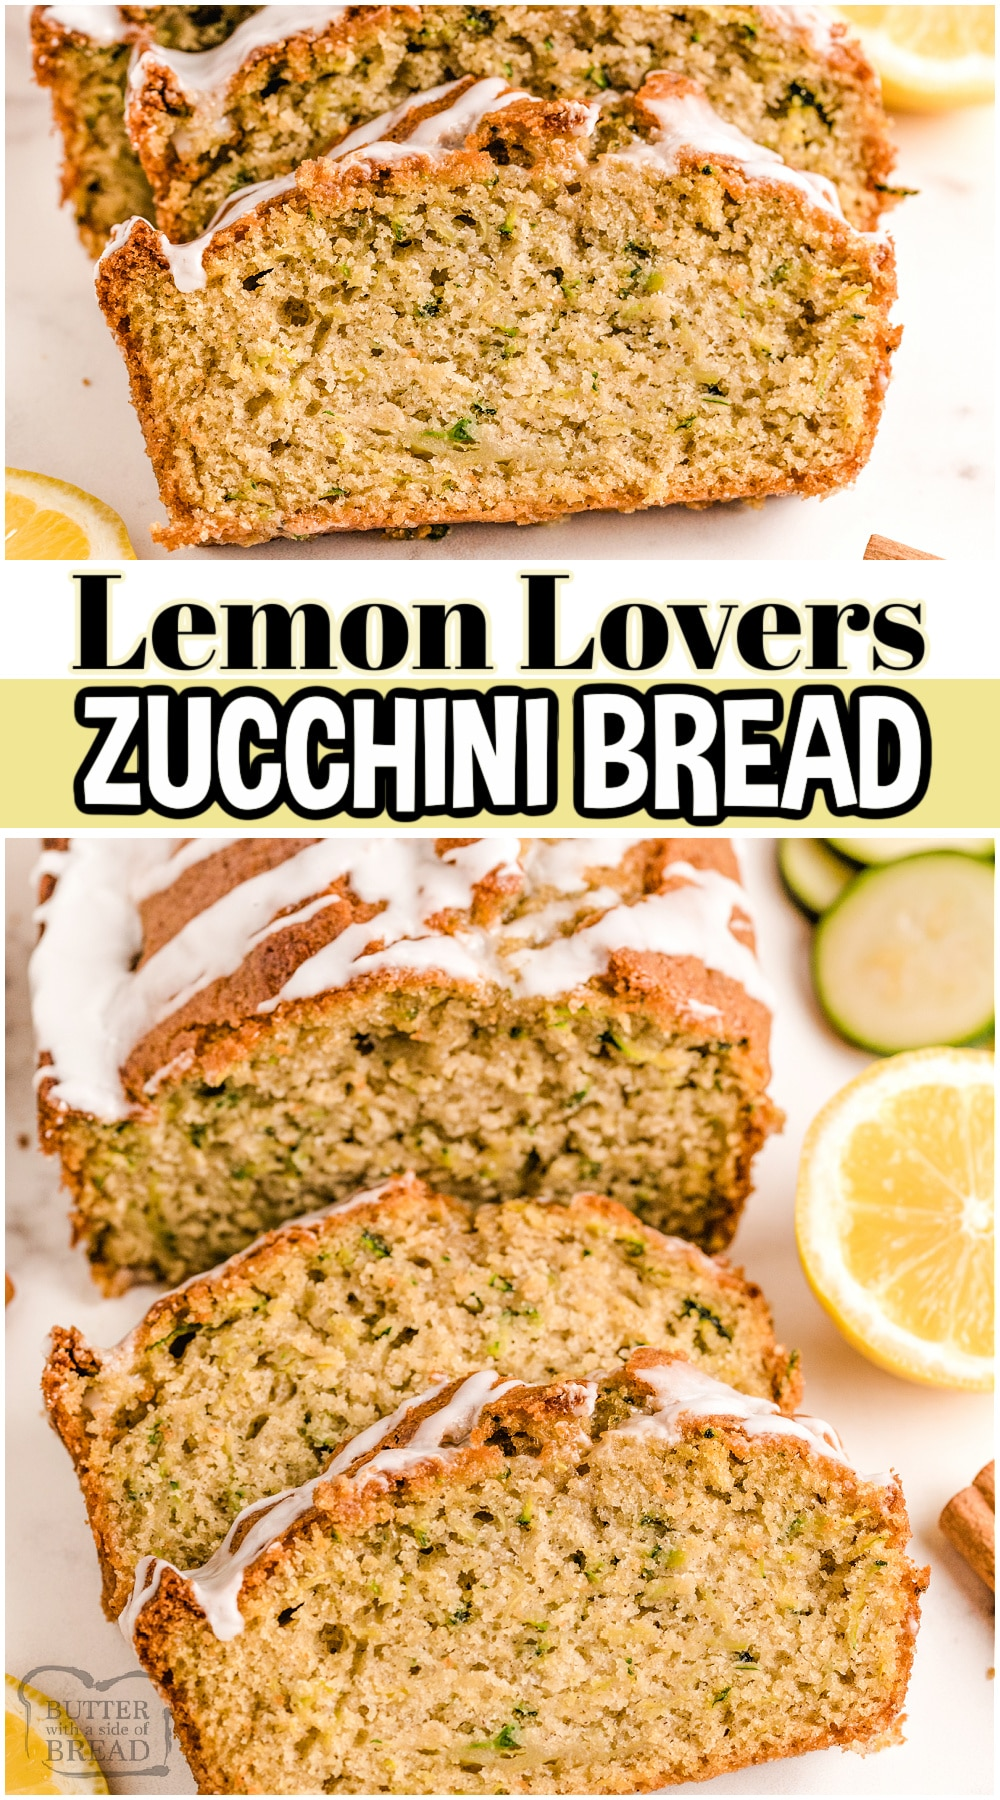 Iced Lemon Zucchini Bread recipe made with simple ingredients and has fantastic flavor! Light & soft sweet bread that uses garden zucchini and the bright, fresh flavor of lemon. Fun variation on classic zucchini bread!